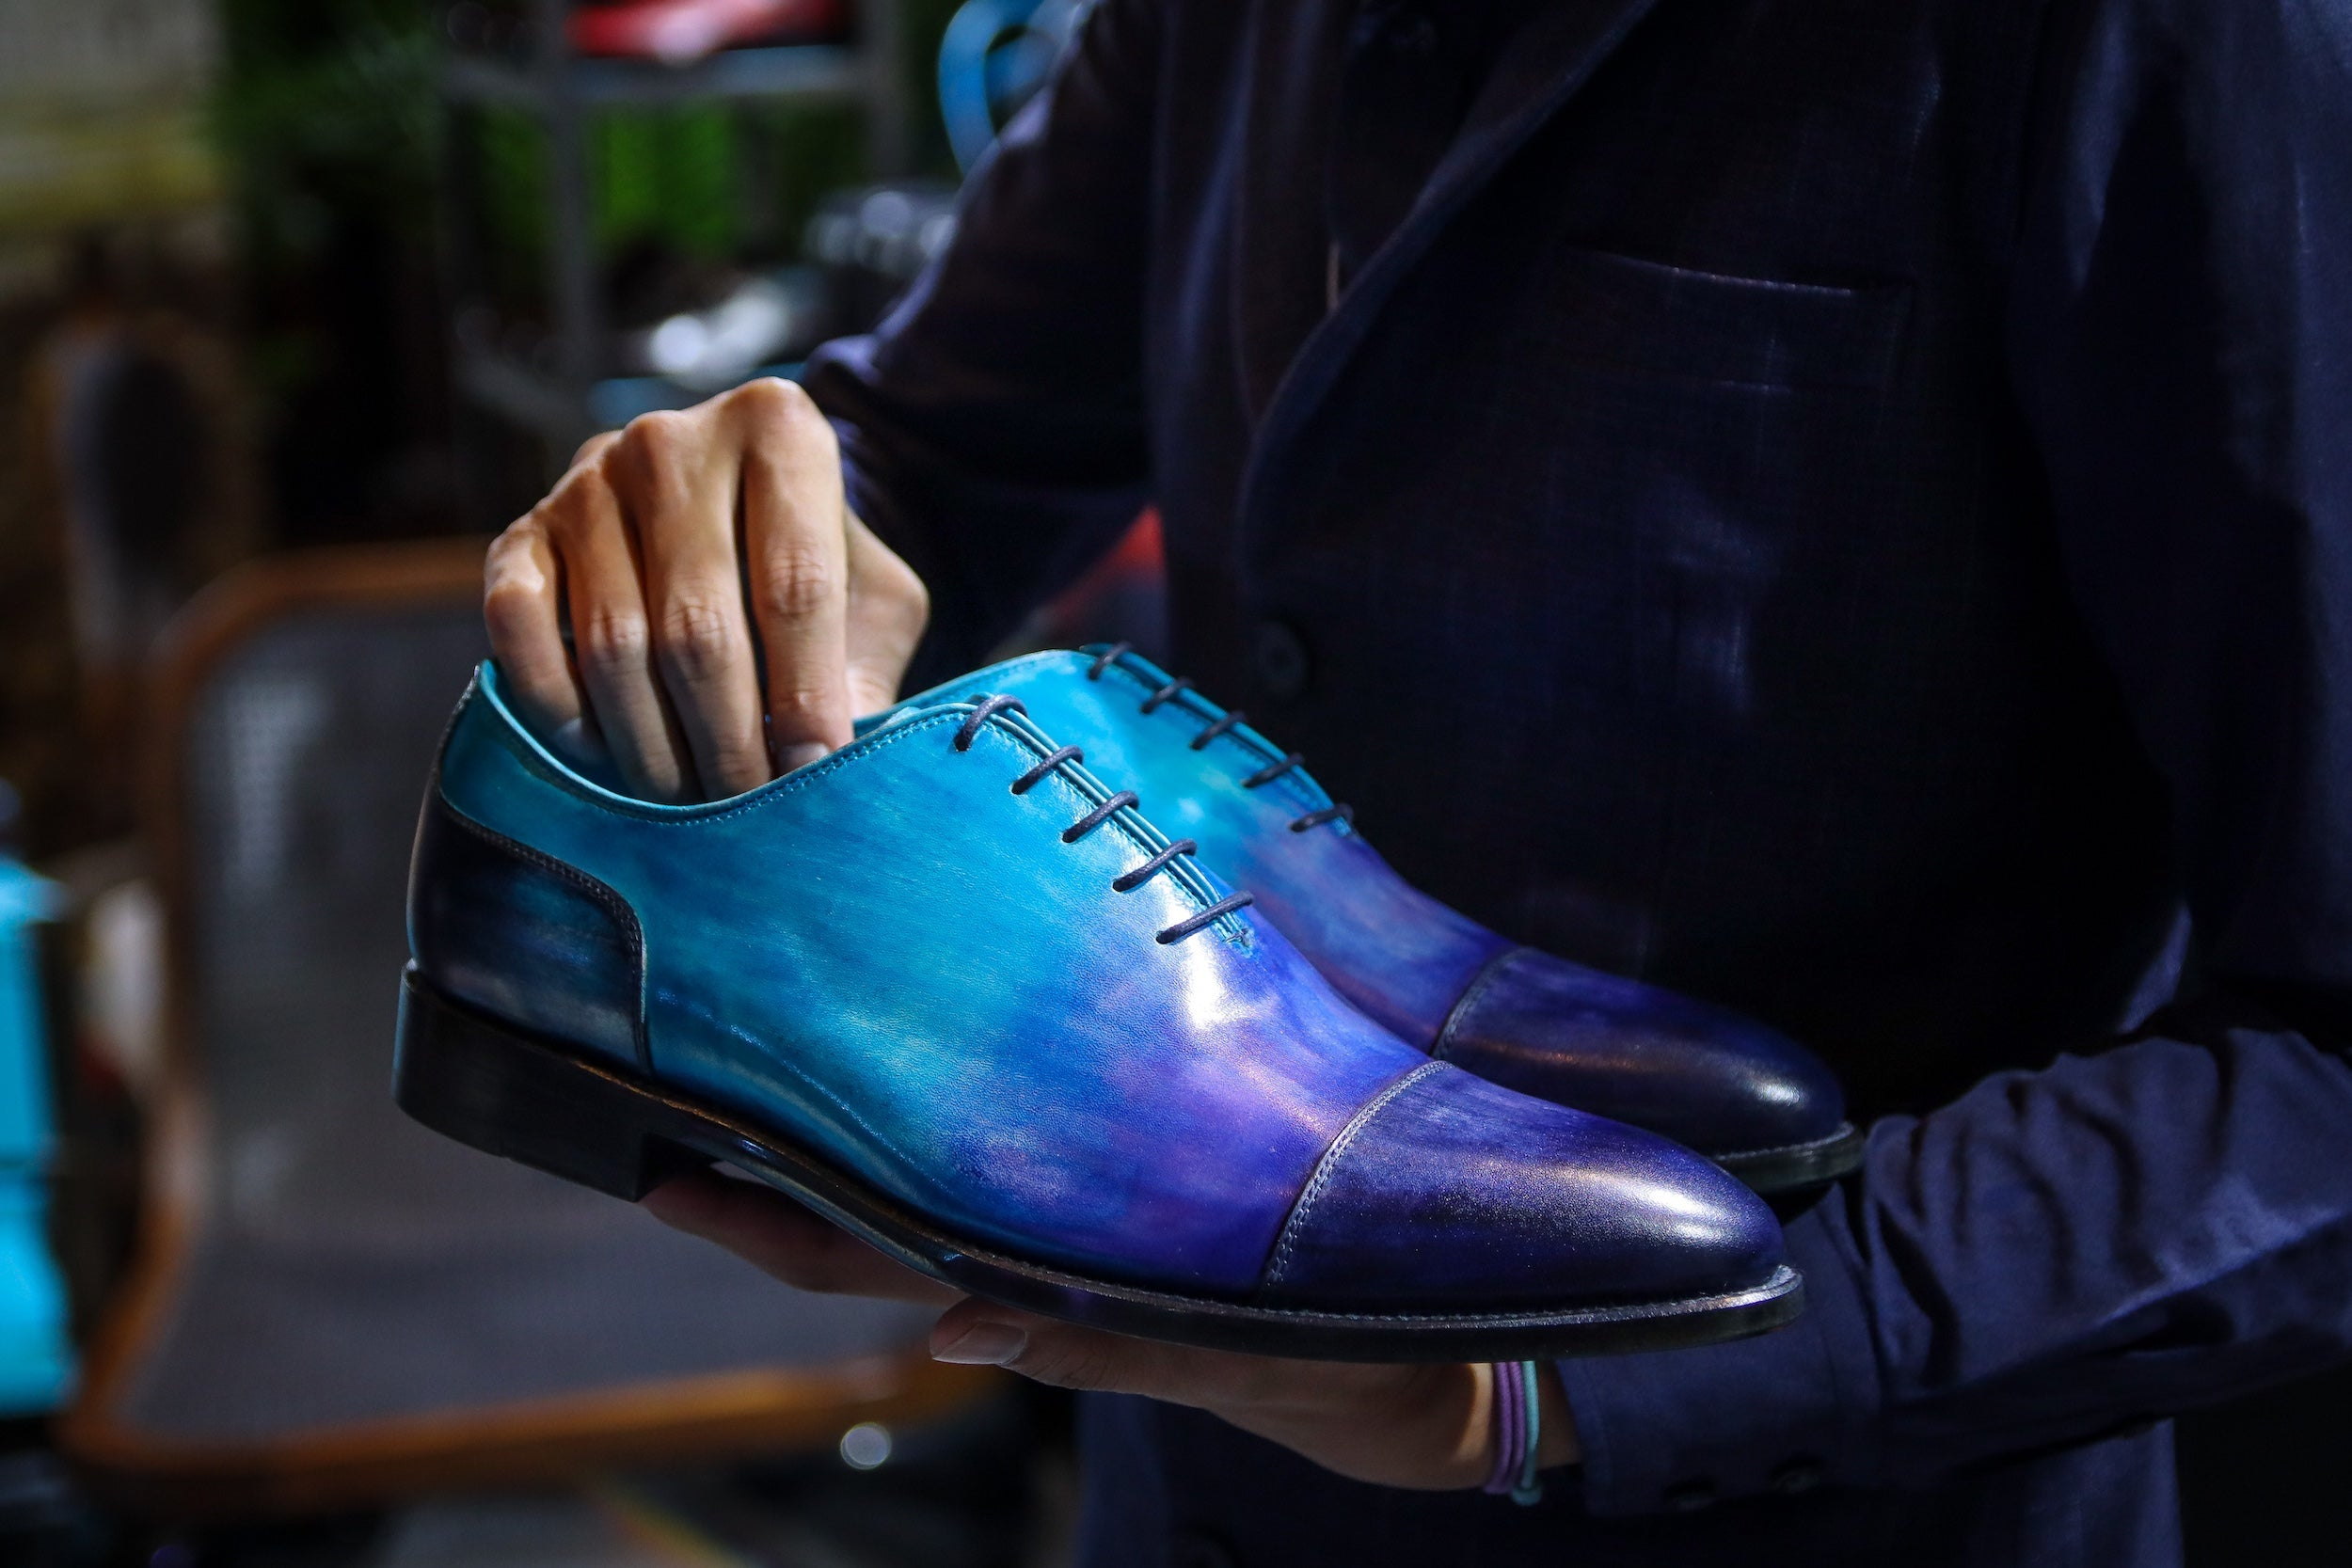 Launching a luxury shoes brand in Asia